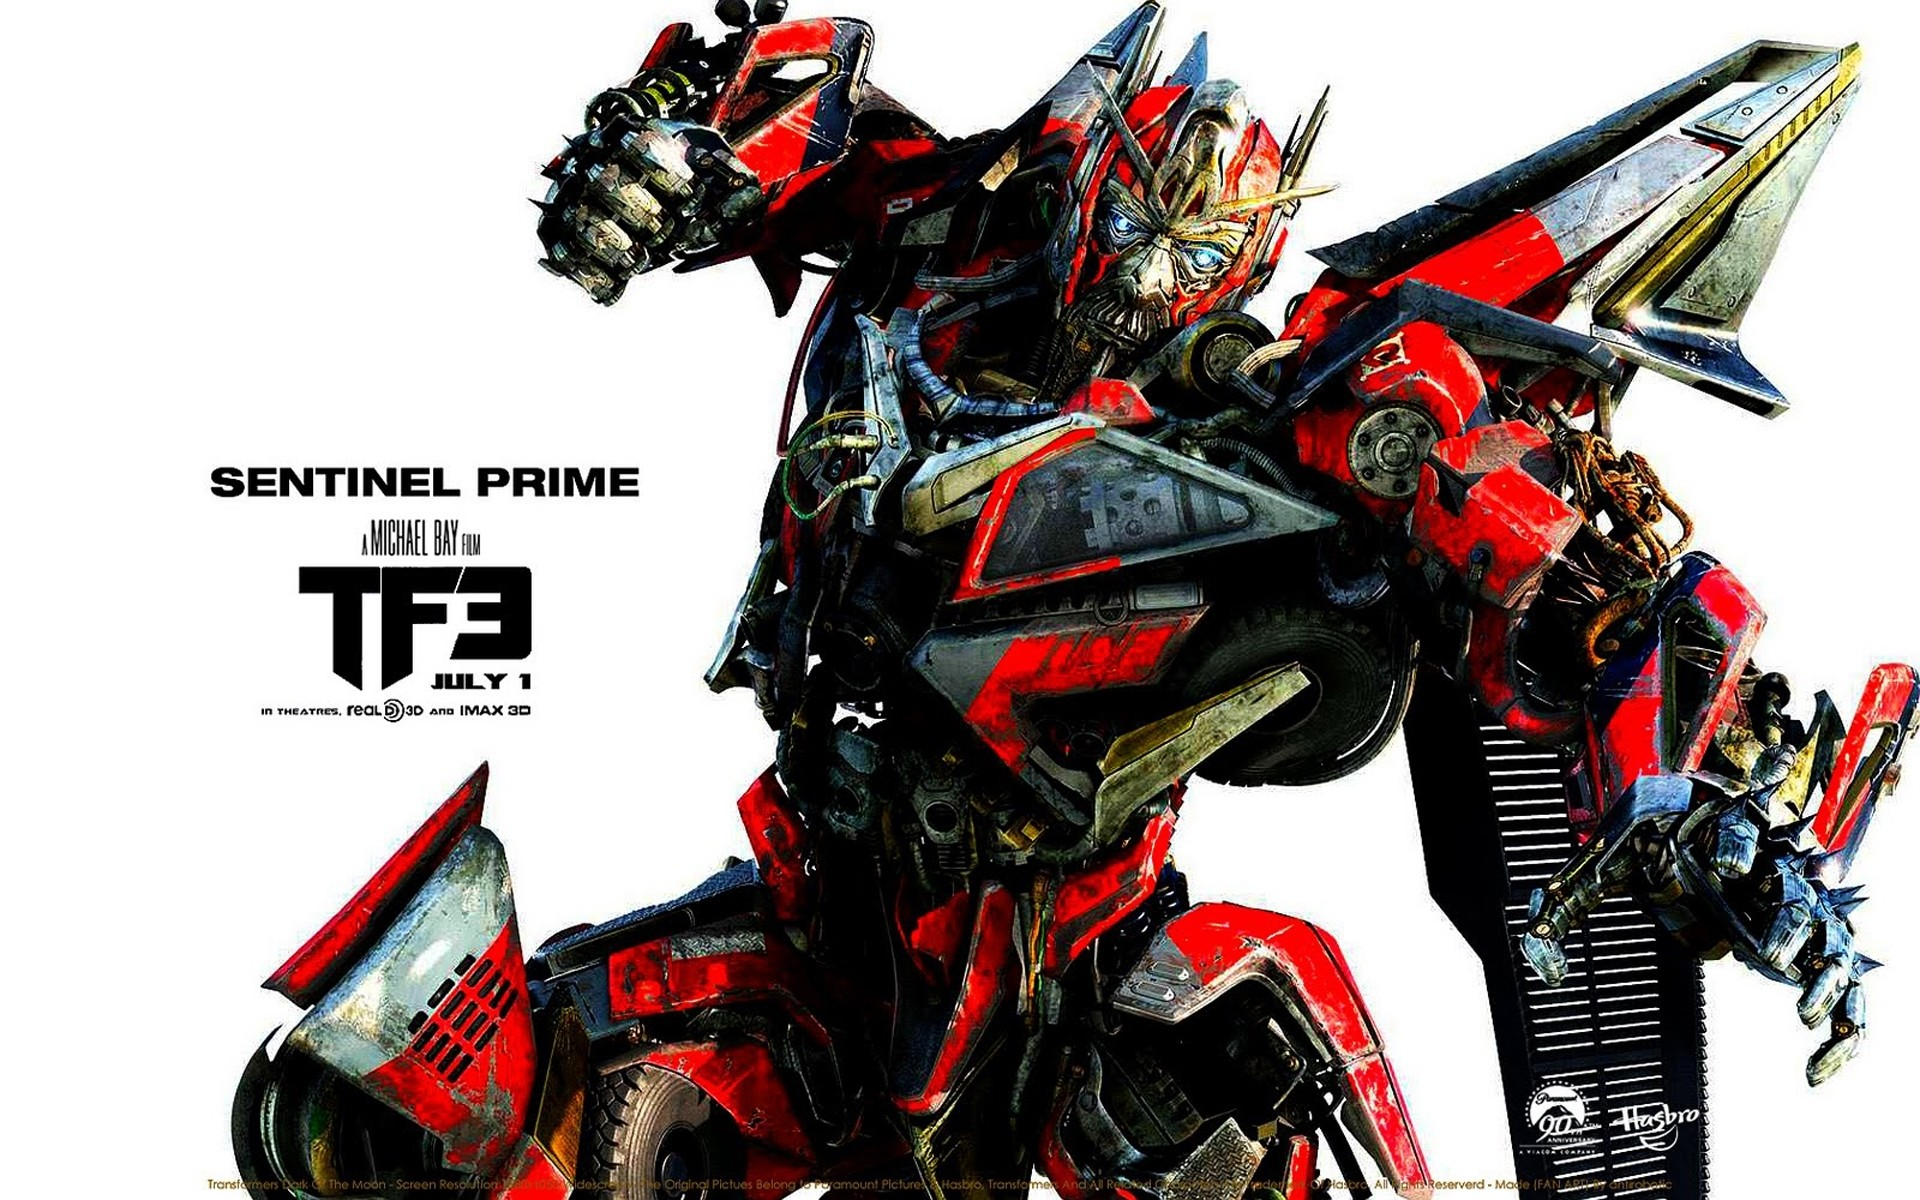 Transformers wallpaper autobots 58 images - Wallpapers transformers 4 ...